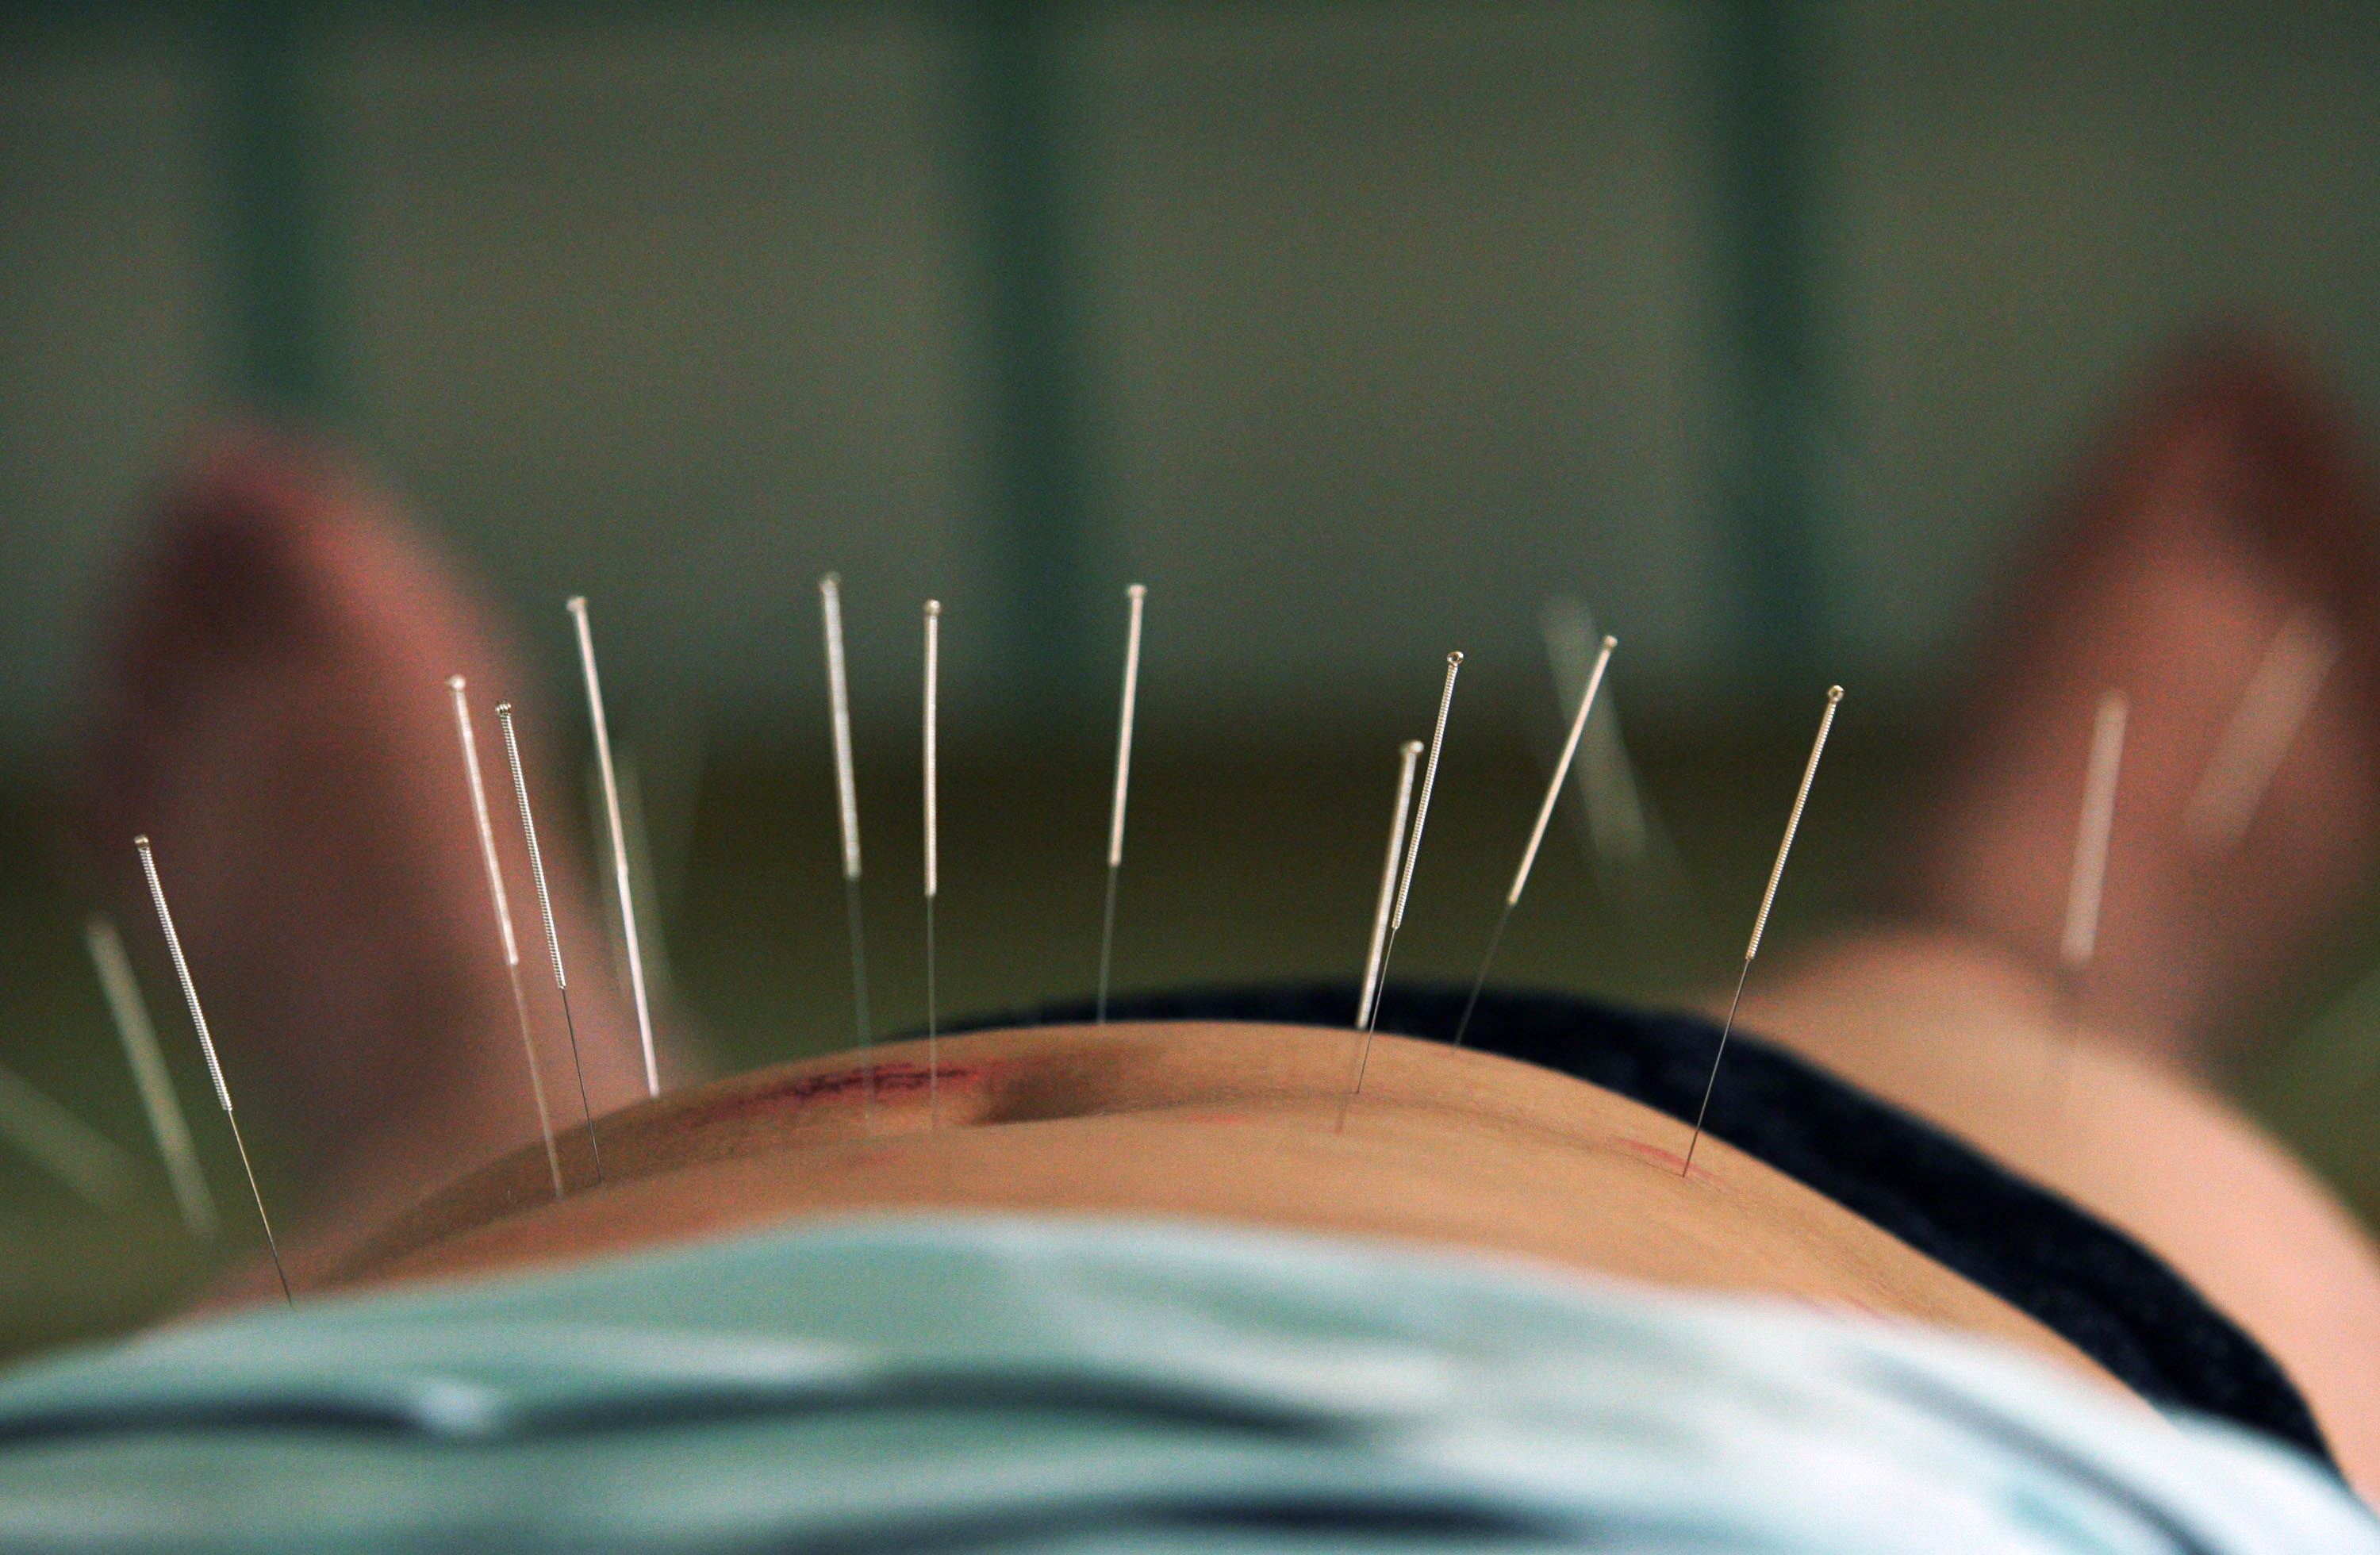 Does acupuncture work for menstrual cramps? We tried it and talked to four experts